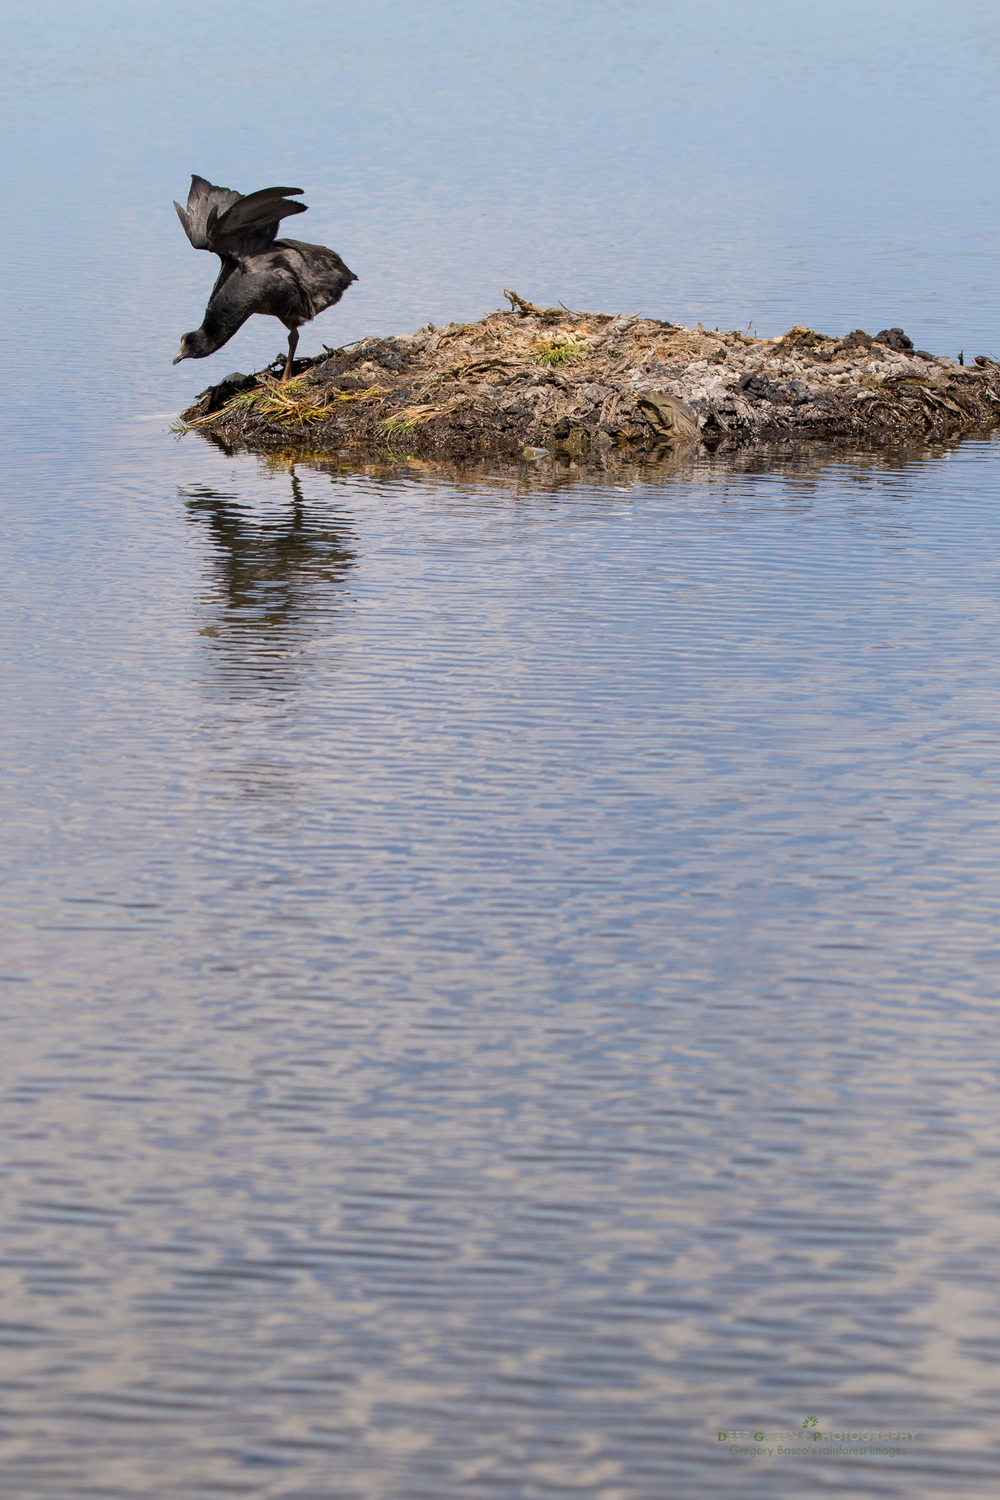 A giant coot protects its nest in a small lagoon in the highlands of Chile's Lauca National Park